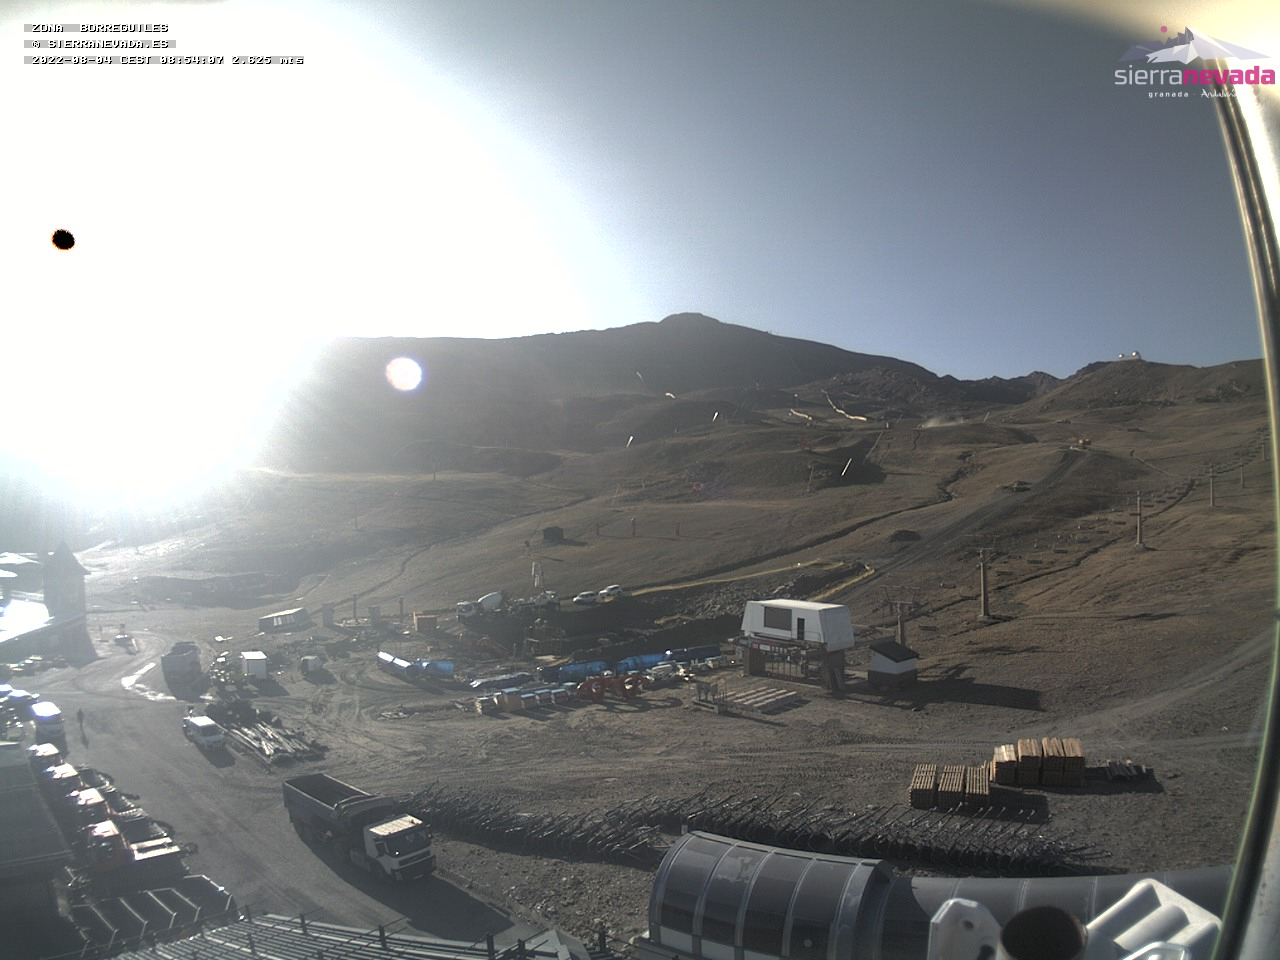 Webcams - sierra nevada